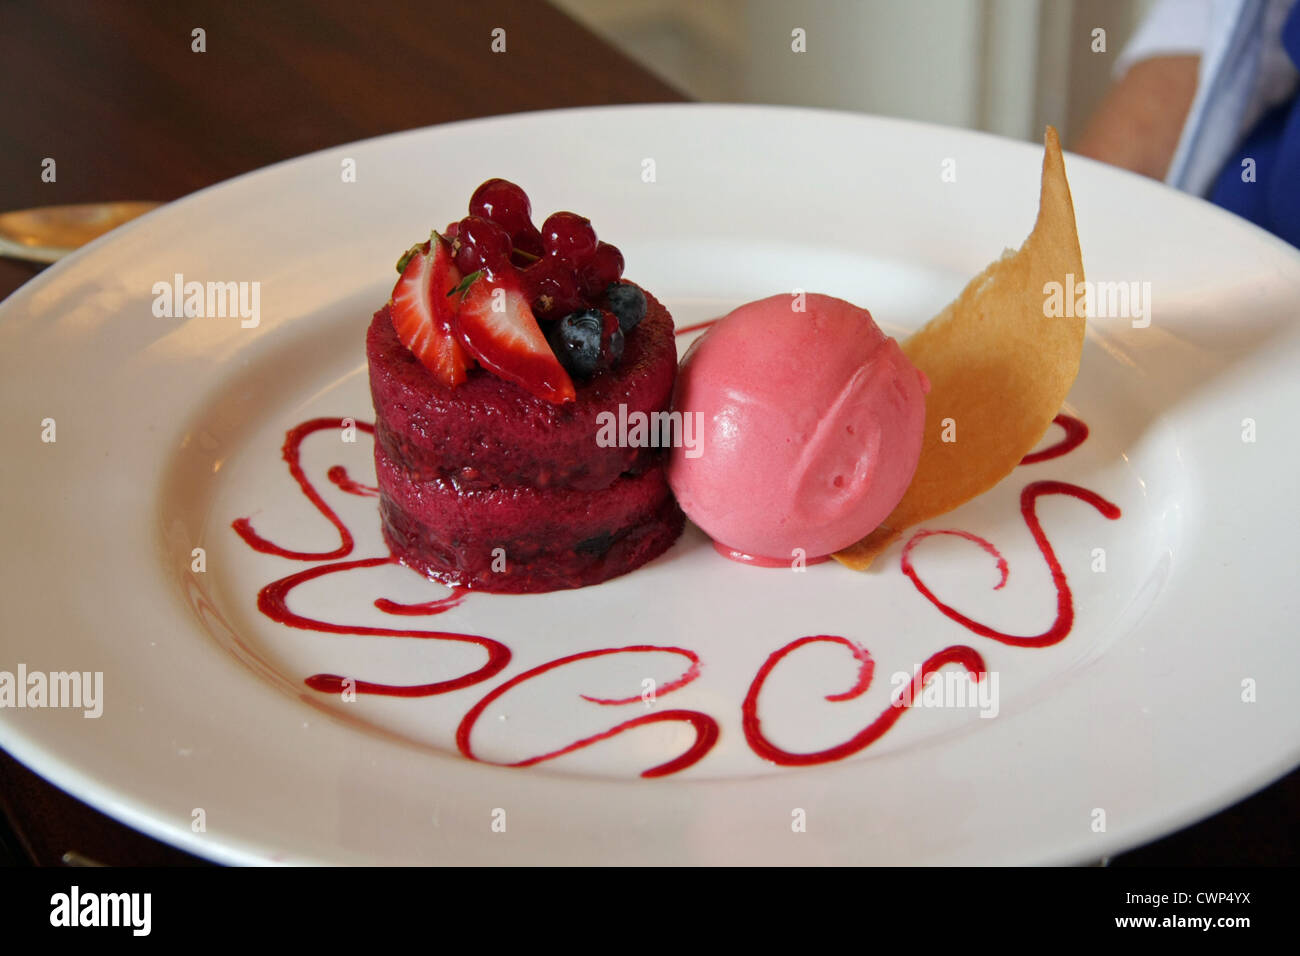 Plate of fancy restaurant food nouvelle cuisine stock photo royalty free image 50273998 alamy for Nouvelle cuisine